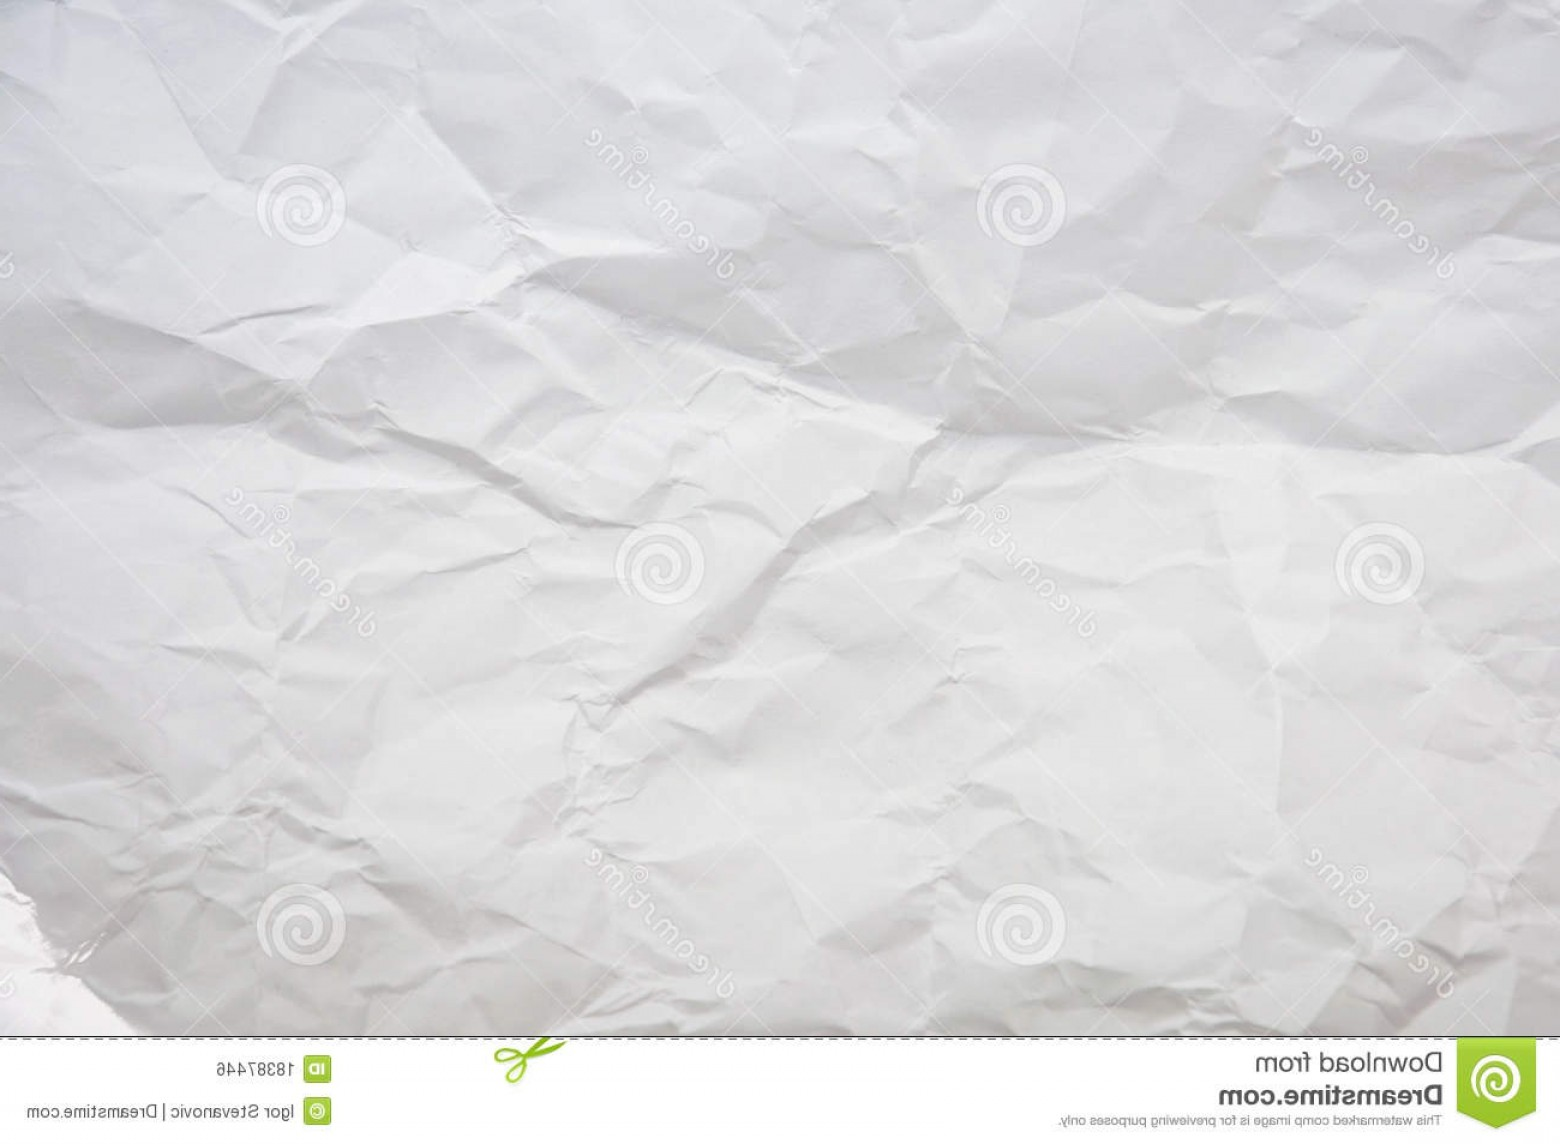 Crinkled Paper Vector: Royalty Free Stock Image Crinkled Paper Image